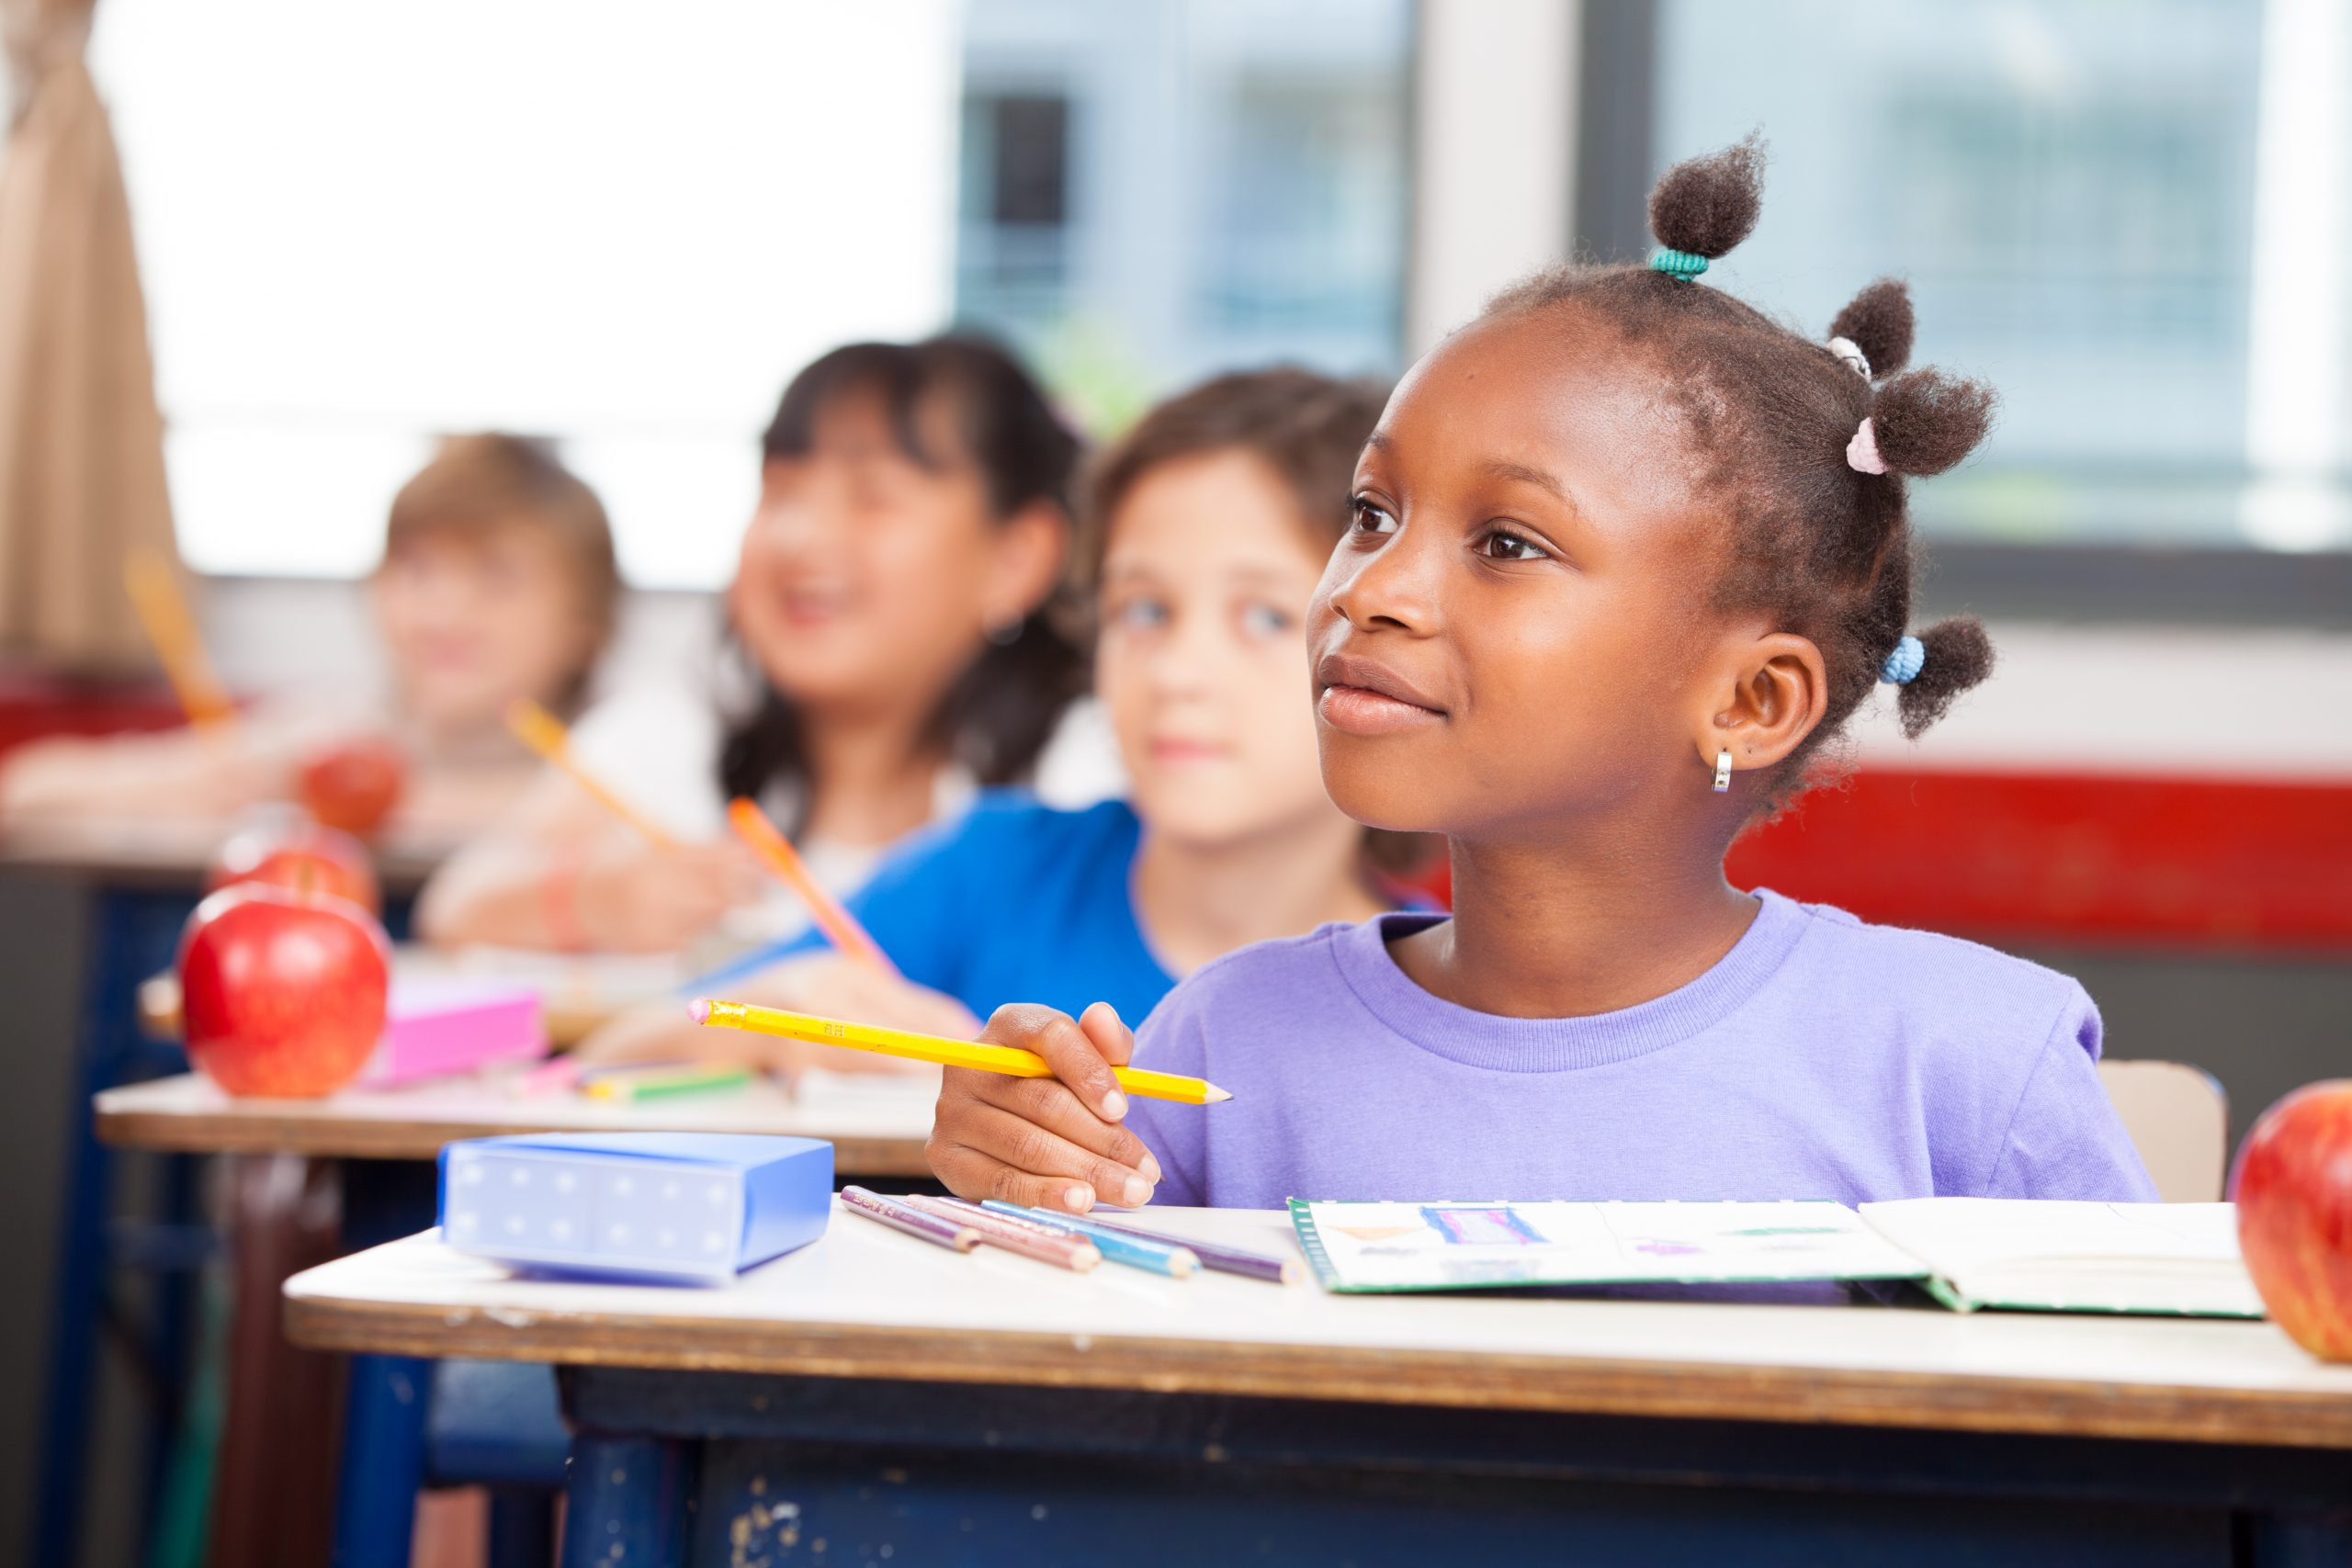 Promoting Psychological Safety & Well-Being in Changing Learning Environments